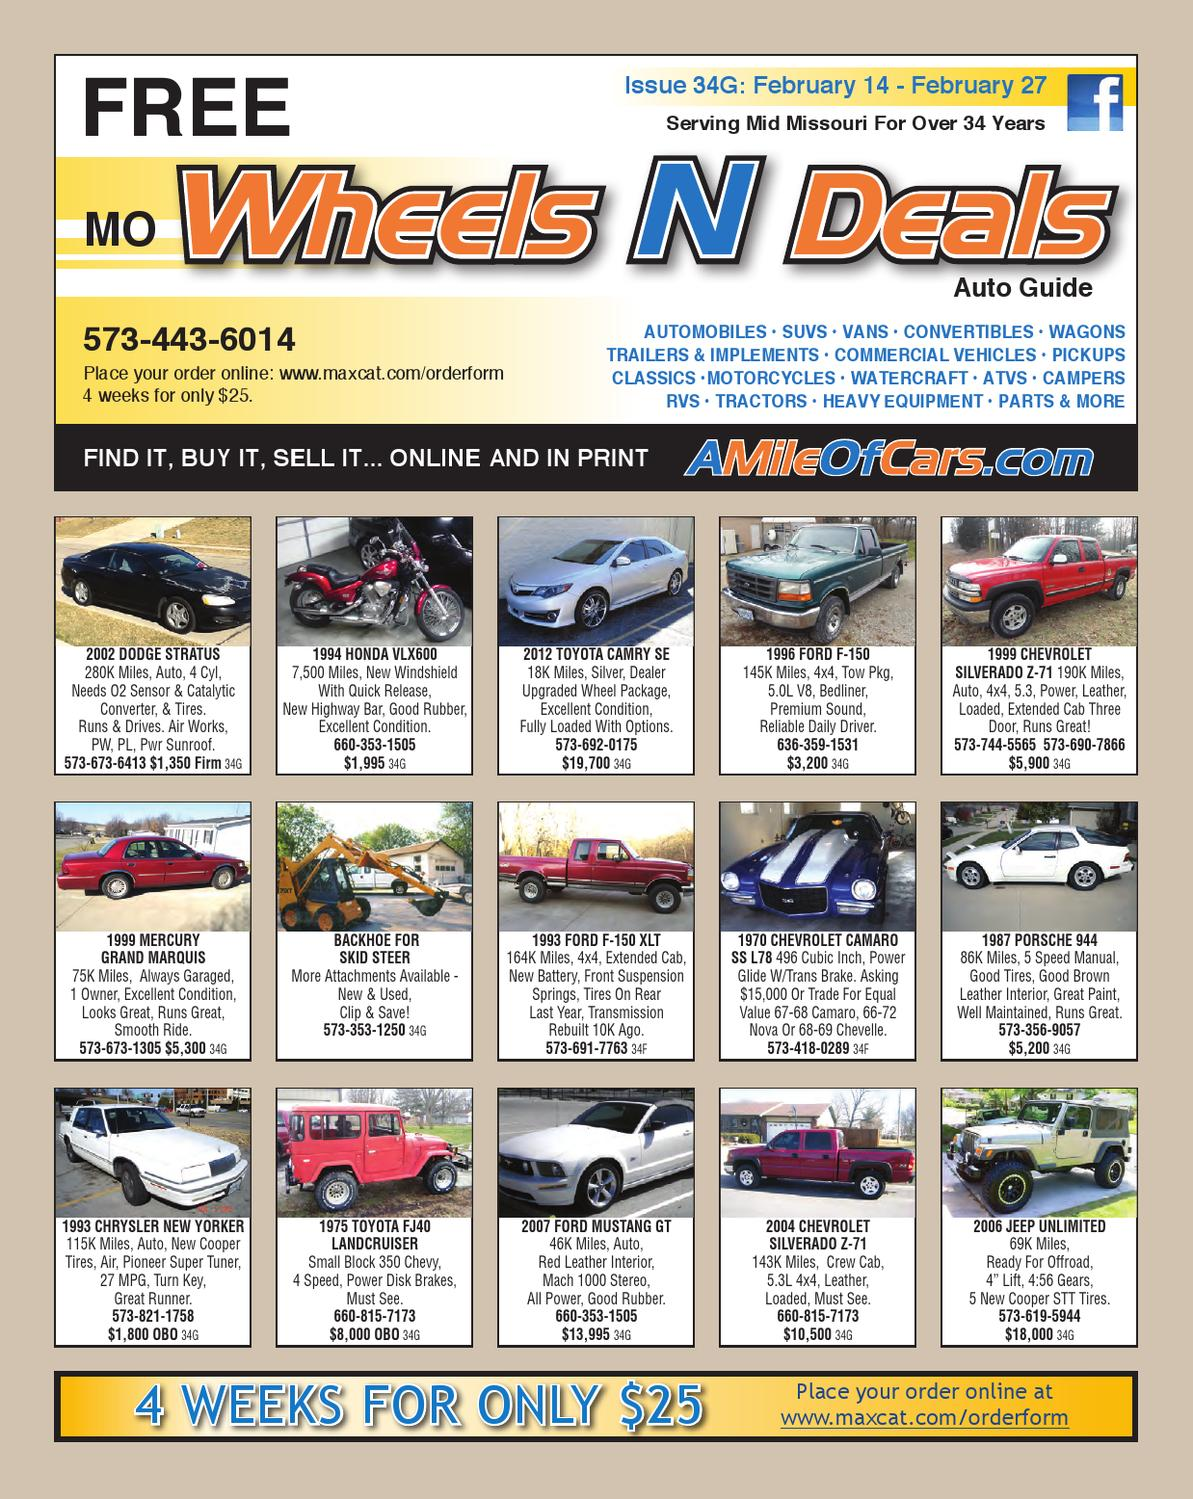 Wheels N Deals Issue 34g By Maximum Media Inc Issuu Buick Rendezvous Cxl 2002 Electric Seat Issues